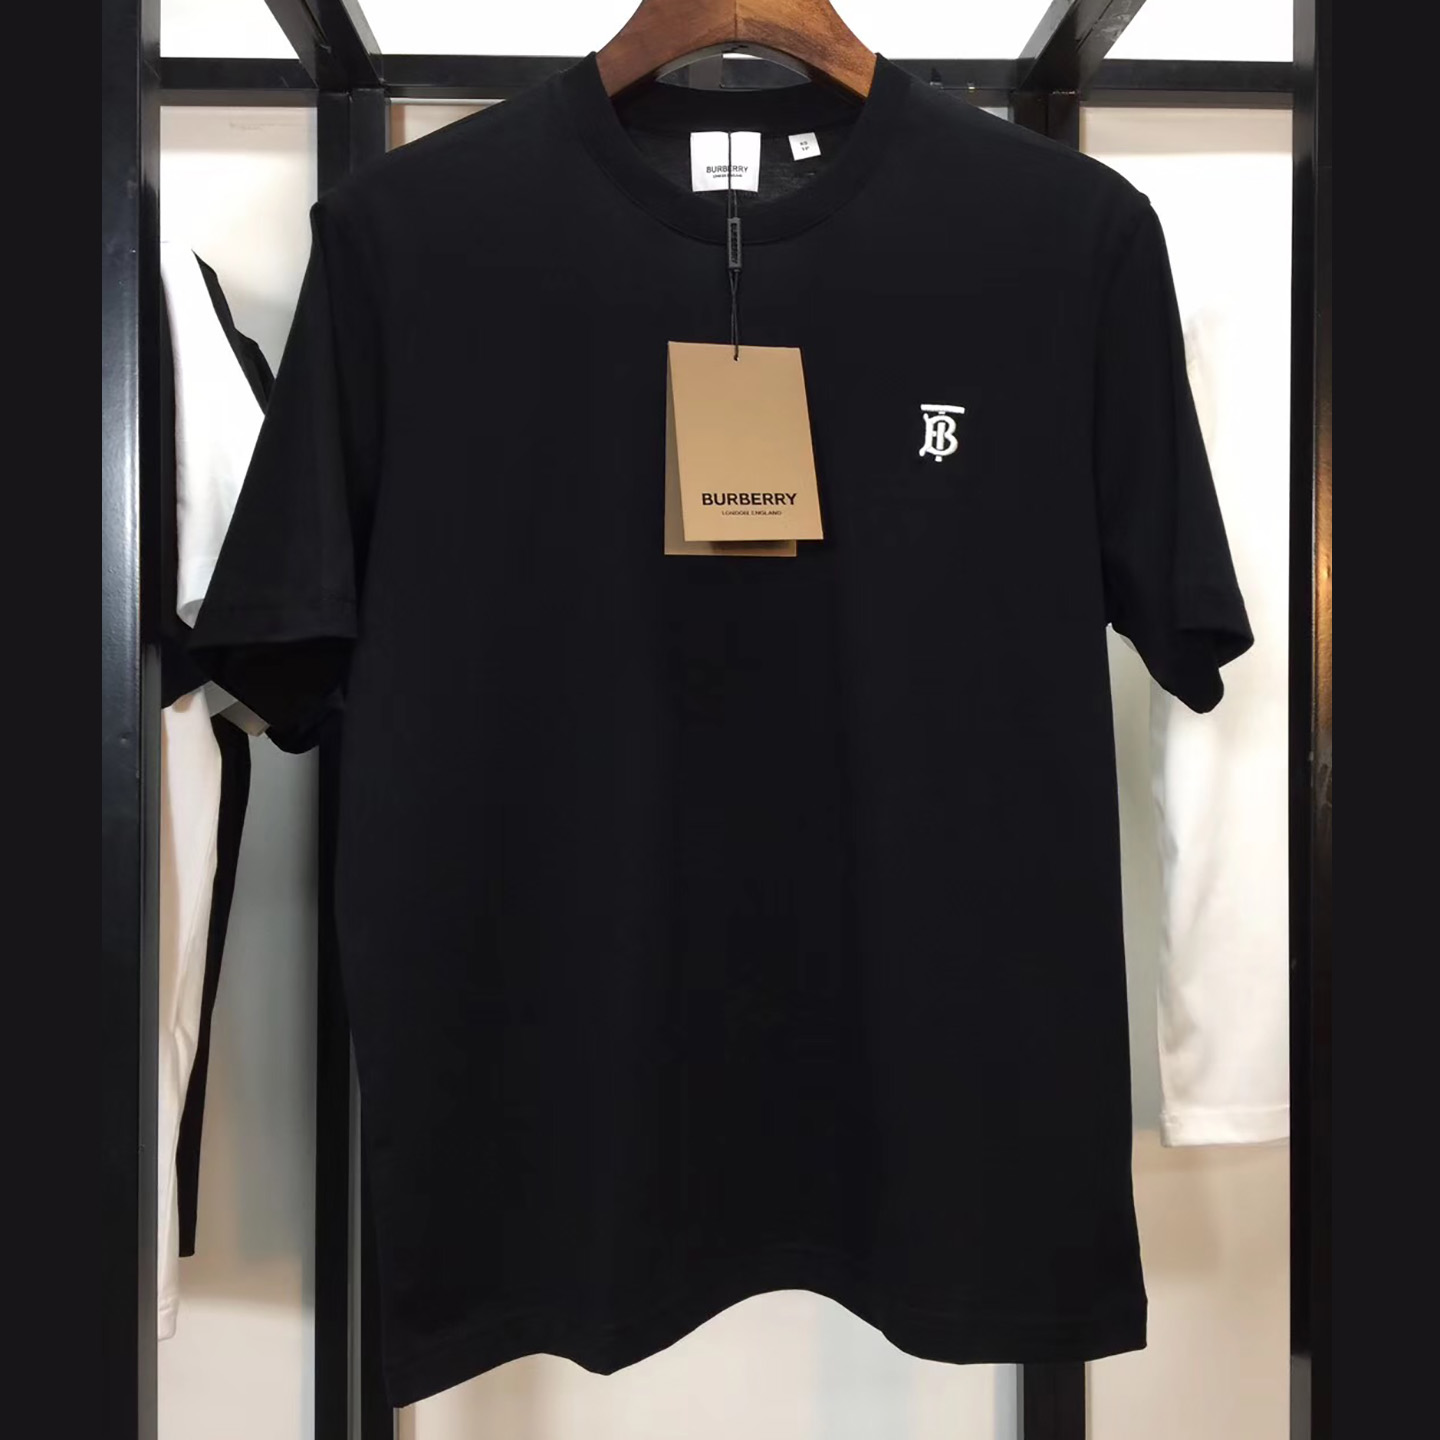 Burberry Monogram Motif Cotton T-shirt Black - FashionBeast